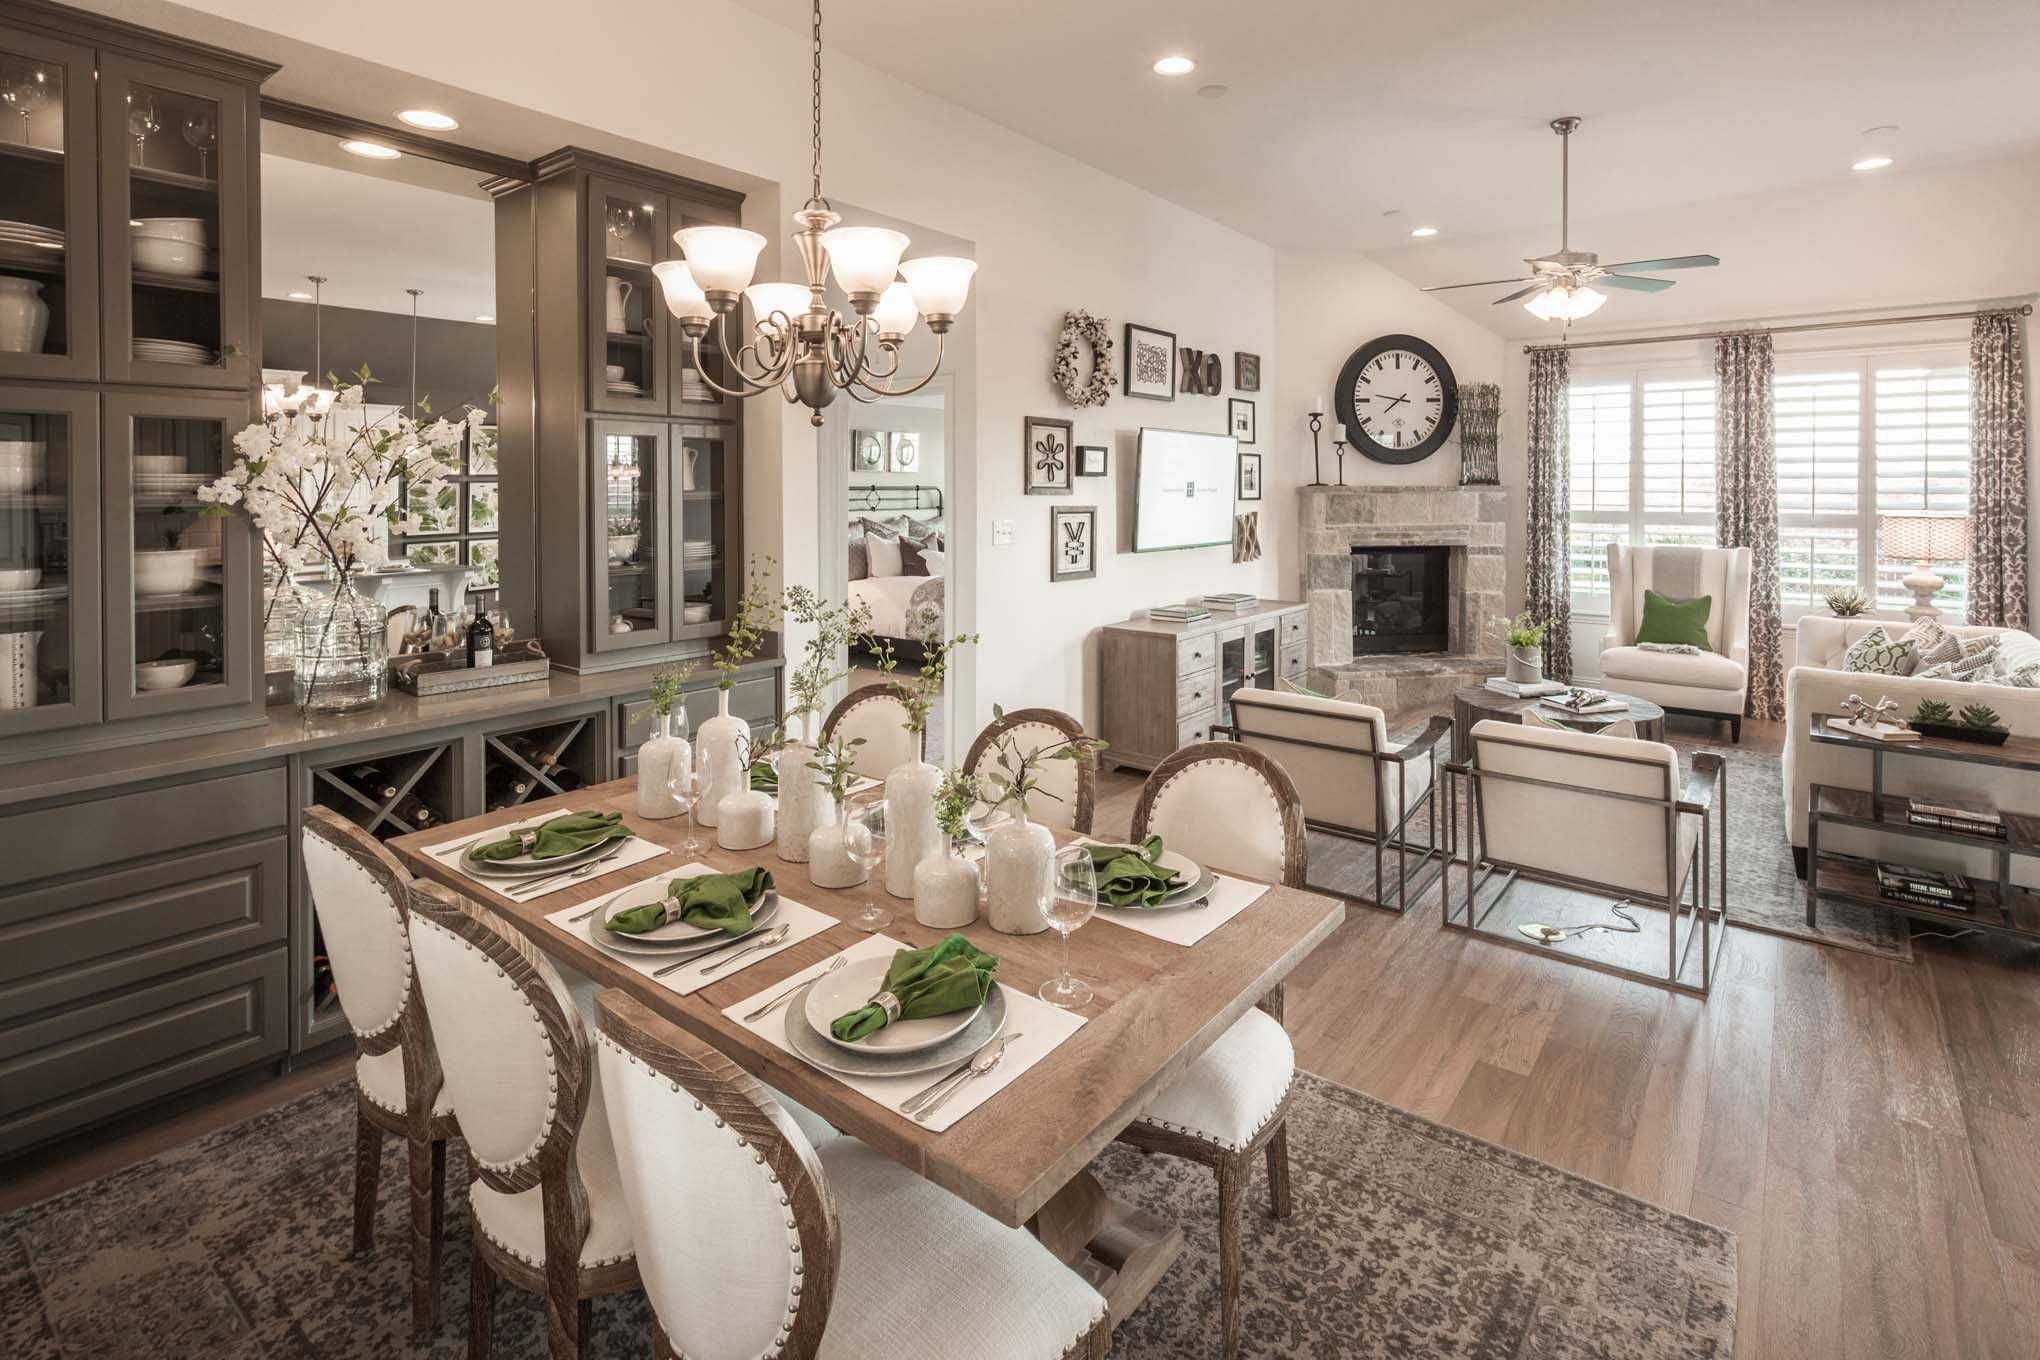 Highland Homes Plan 554 Model Home in